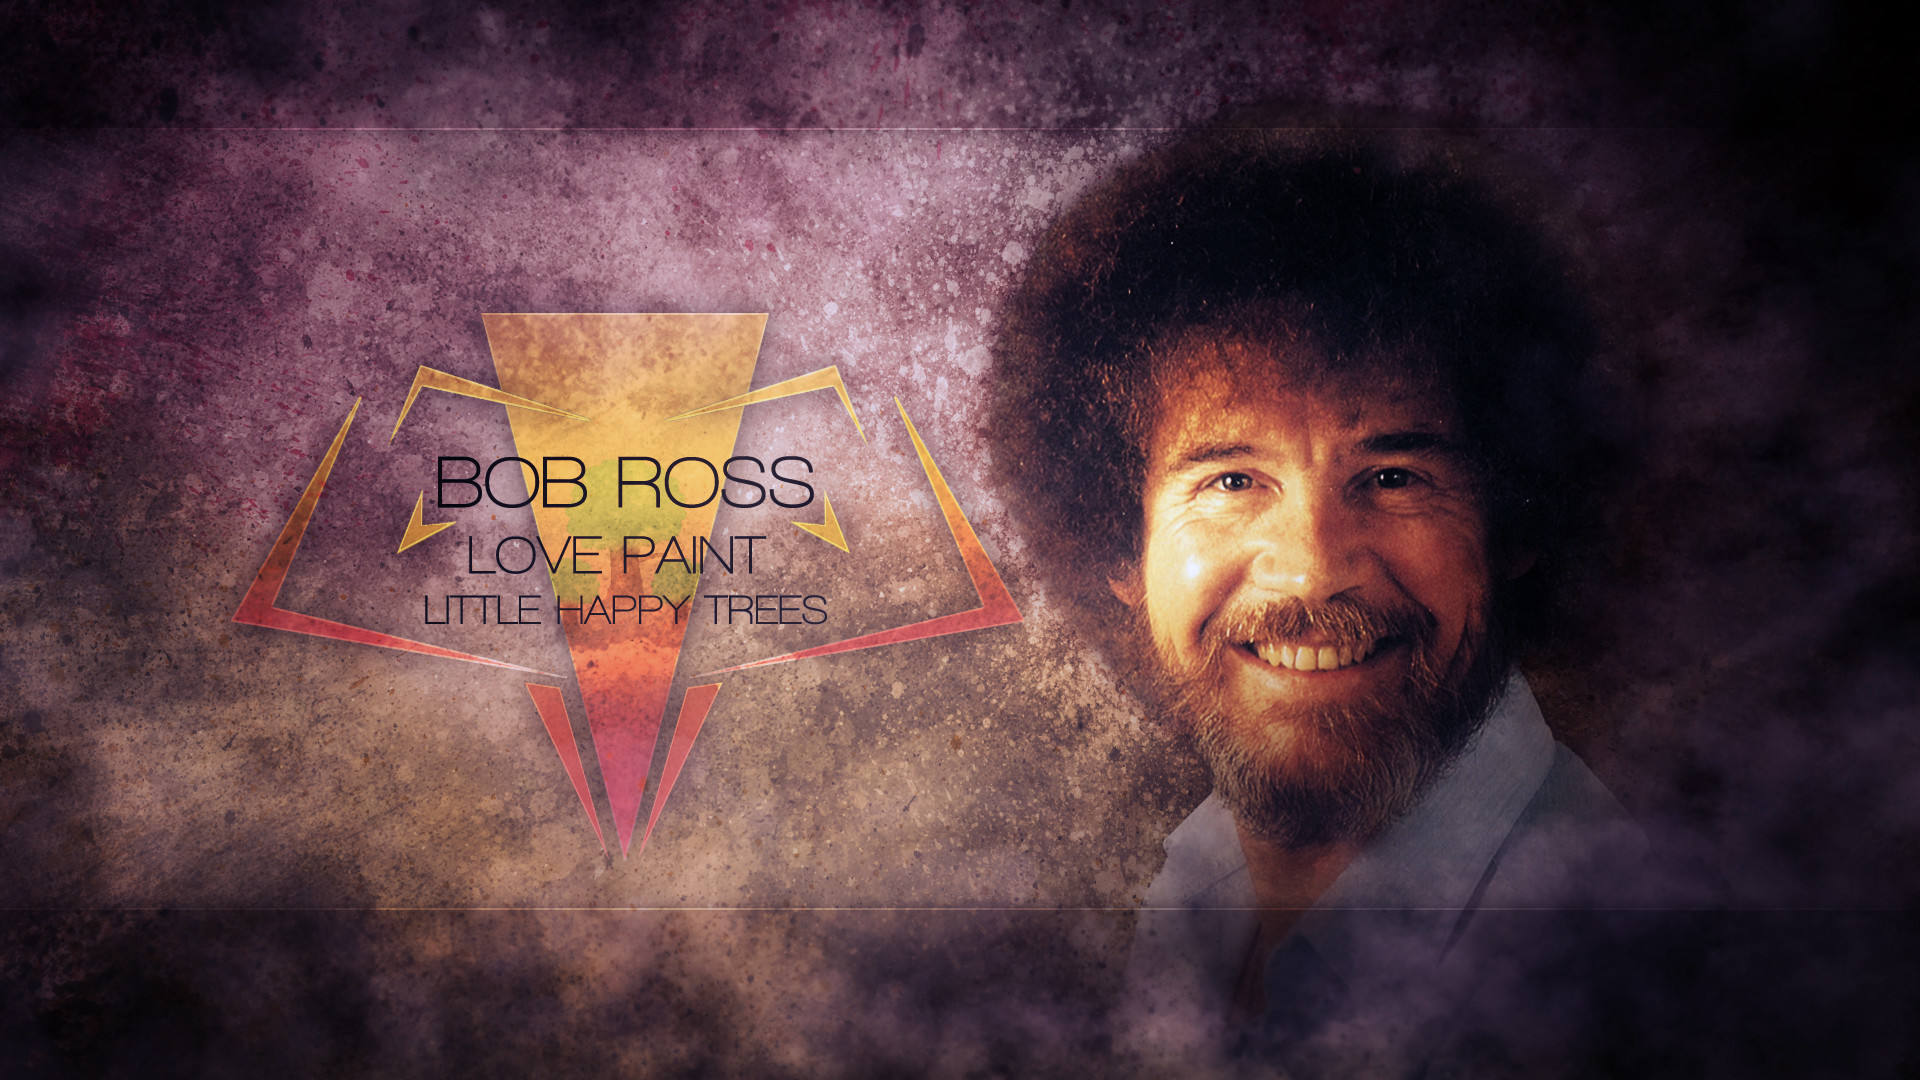 Res: 1920x1080, BOB ROSS LOVE PAINT Bob Ross facial hair beard darkness atmosphere  phenomenon